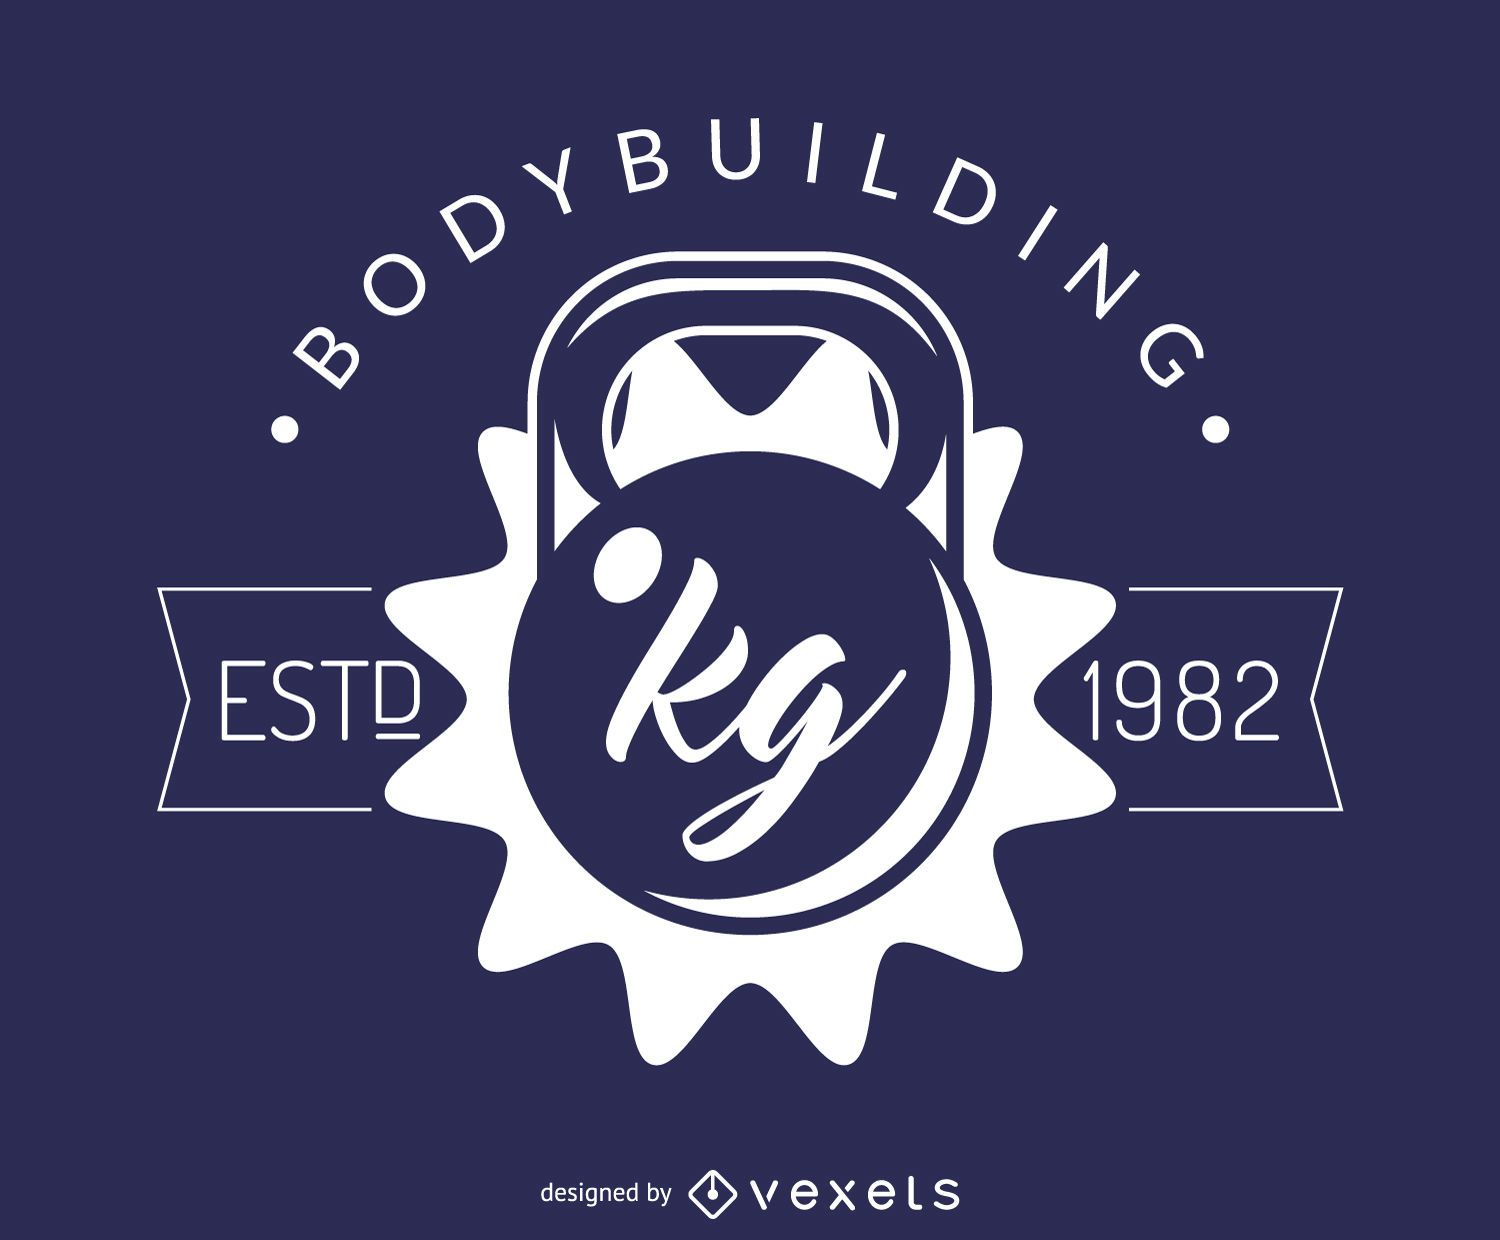 Bodybuilding fitness gym logo template - Vector download for Gym Logo Pictures  270bof